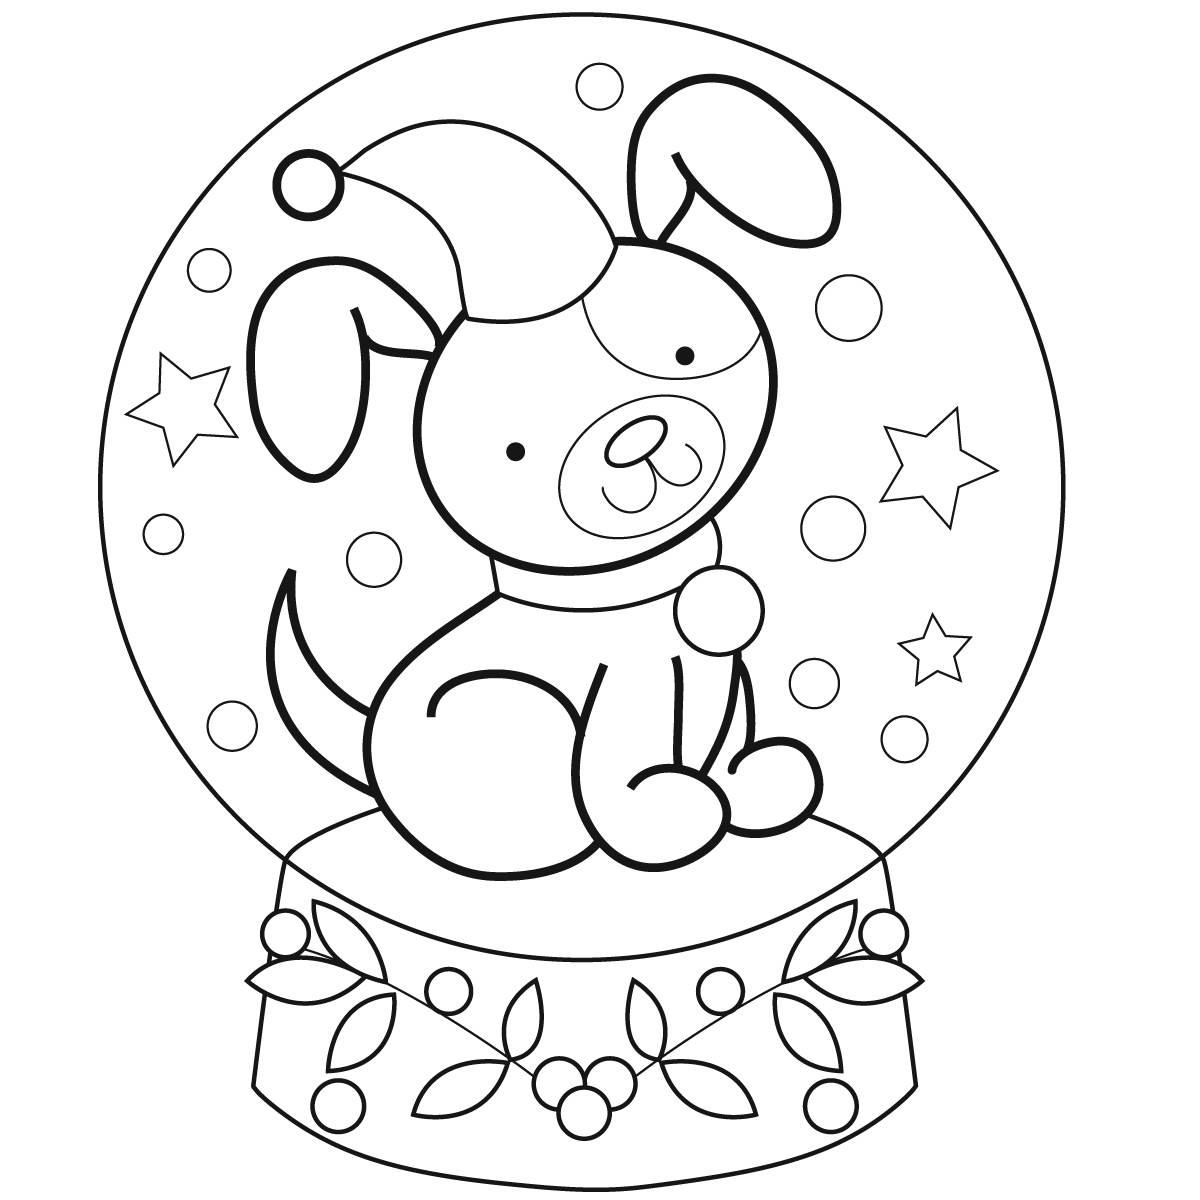 Coloring pages december free download best coloring for December coloring page